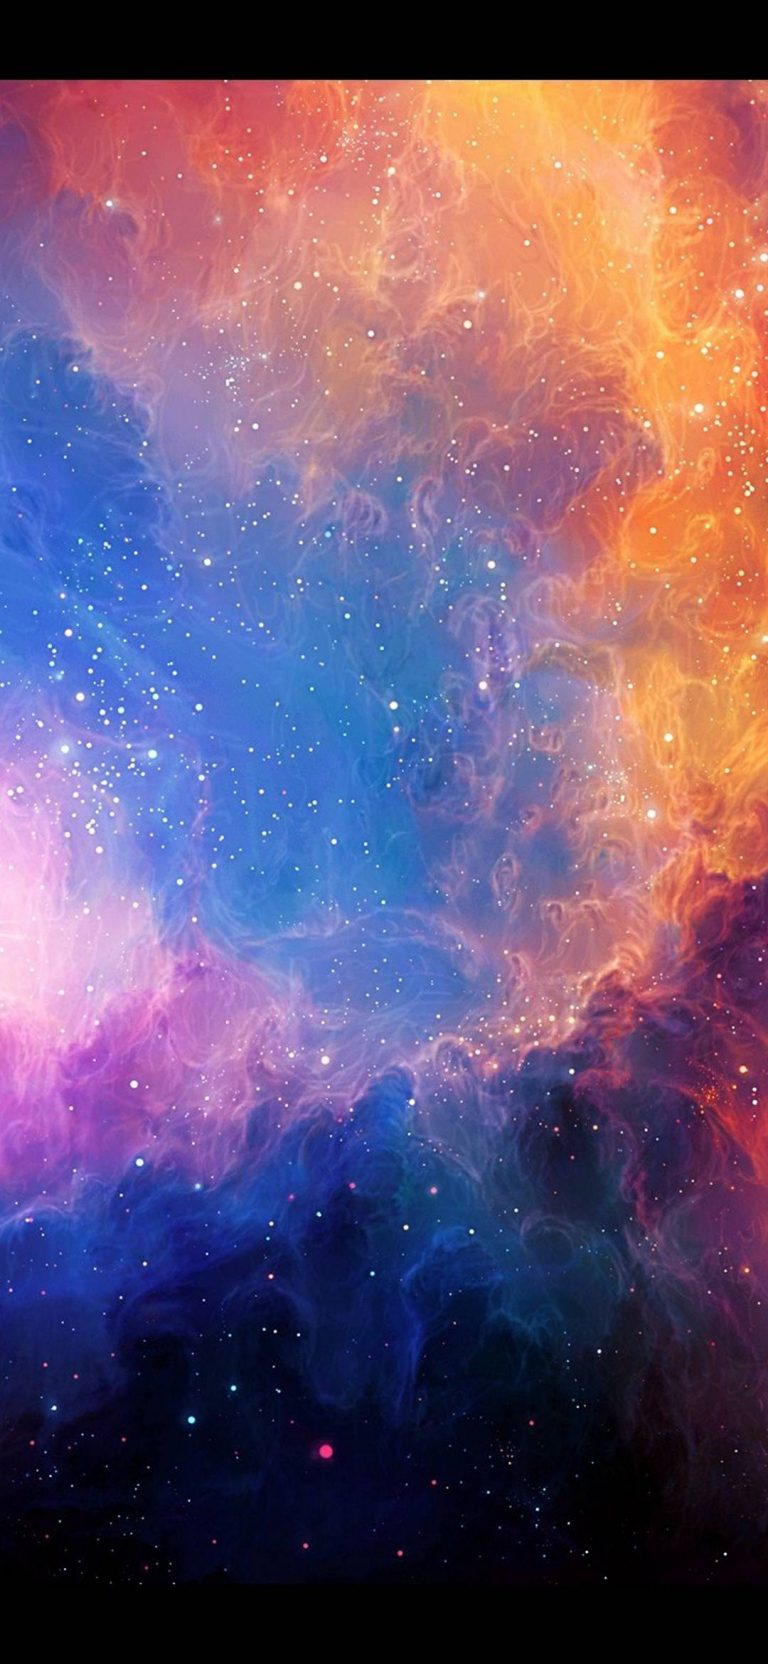 Best Car Wallpapers For Iphone Abstract Outer Space Stars Nebulae 1080x2340